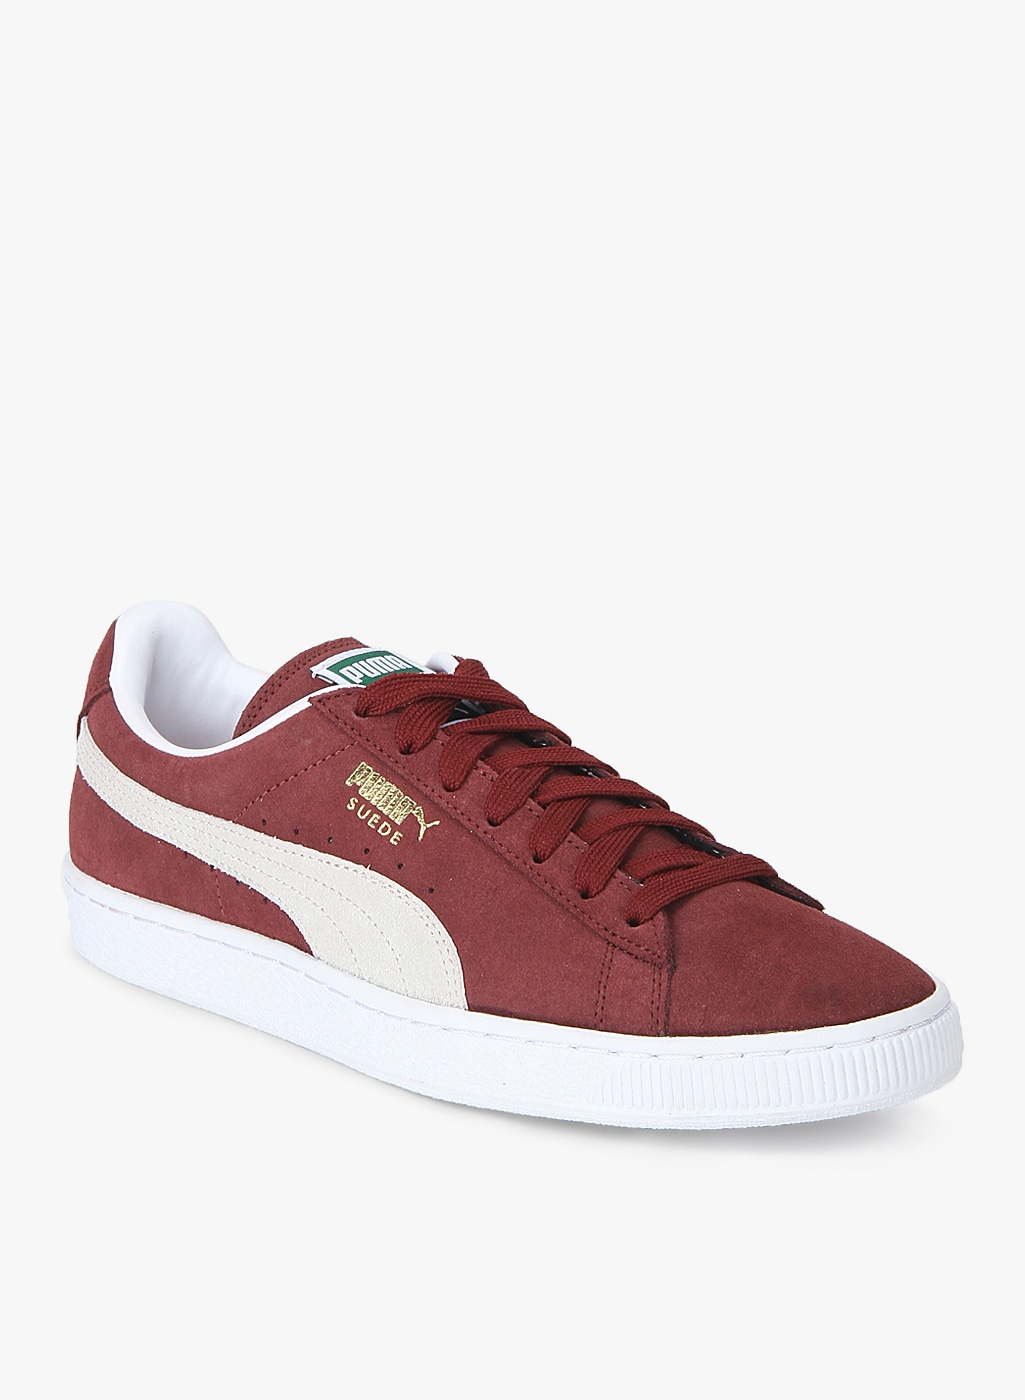 612606c5cb1 Puma Sneakers - Buy Puma Sneakers Online in India